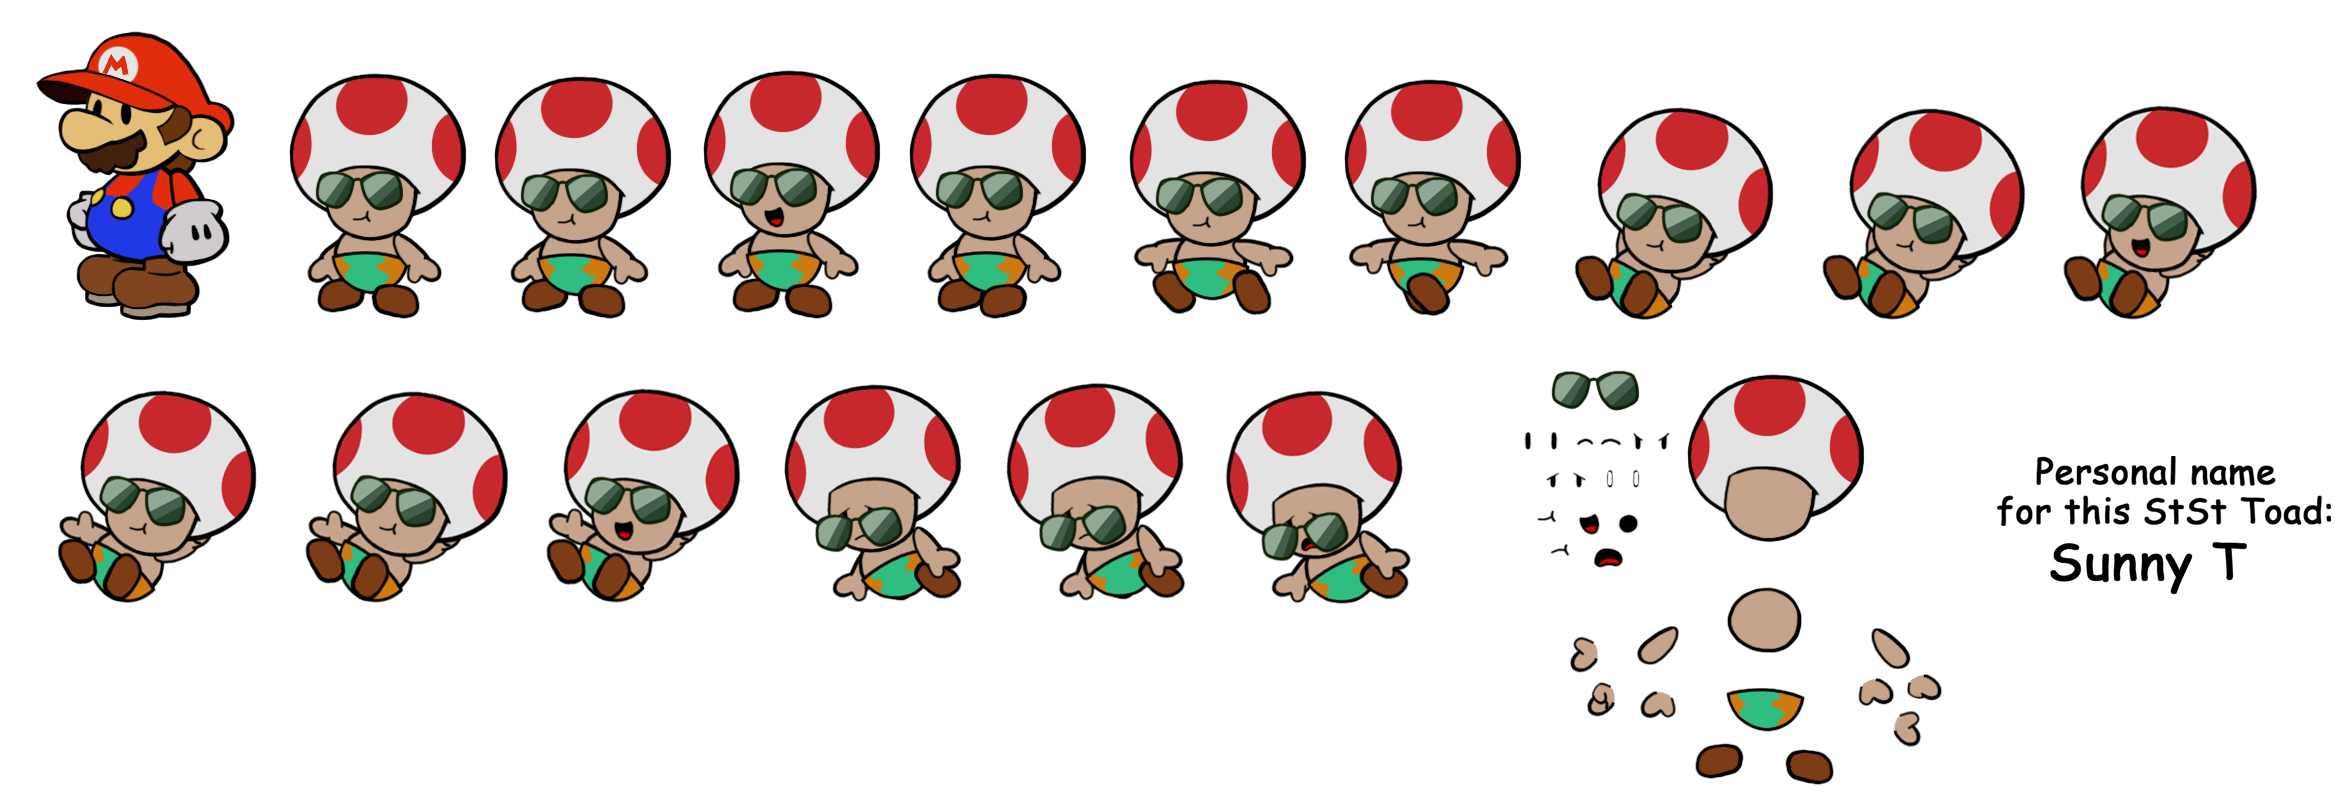 Oasis Toad (Paper Mario Style)